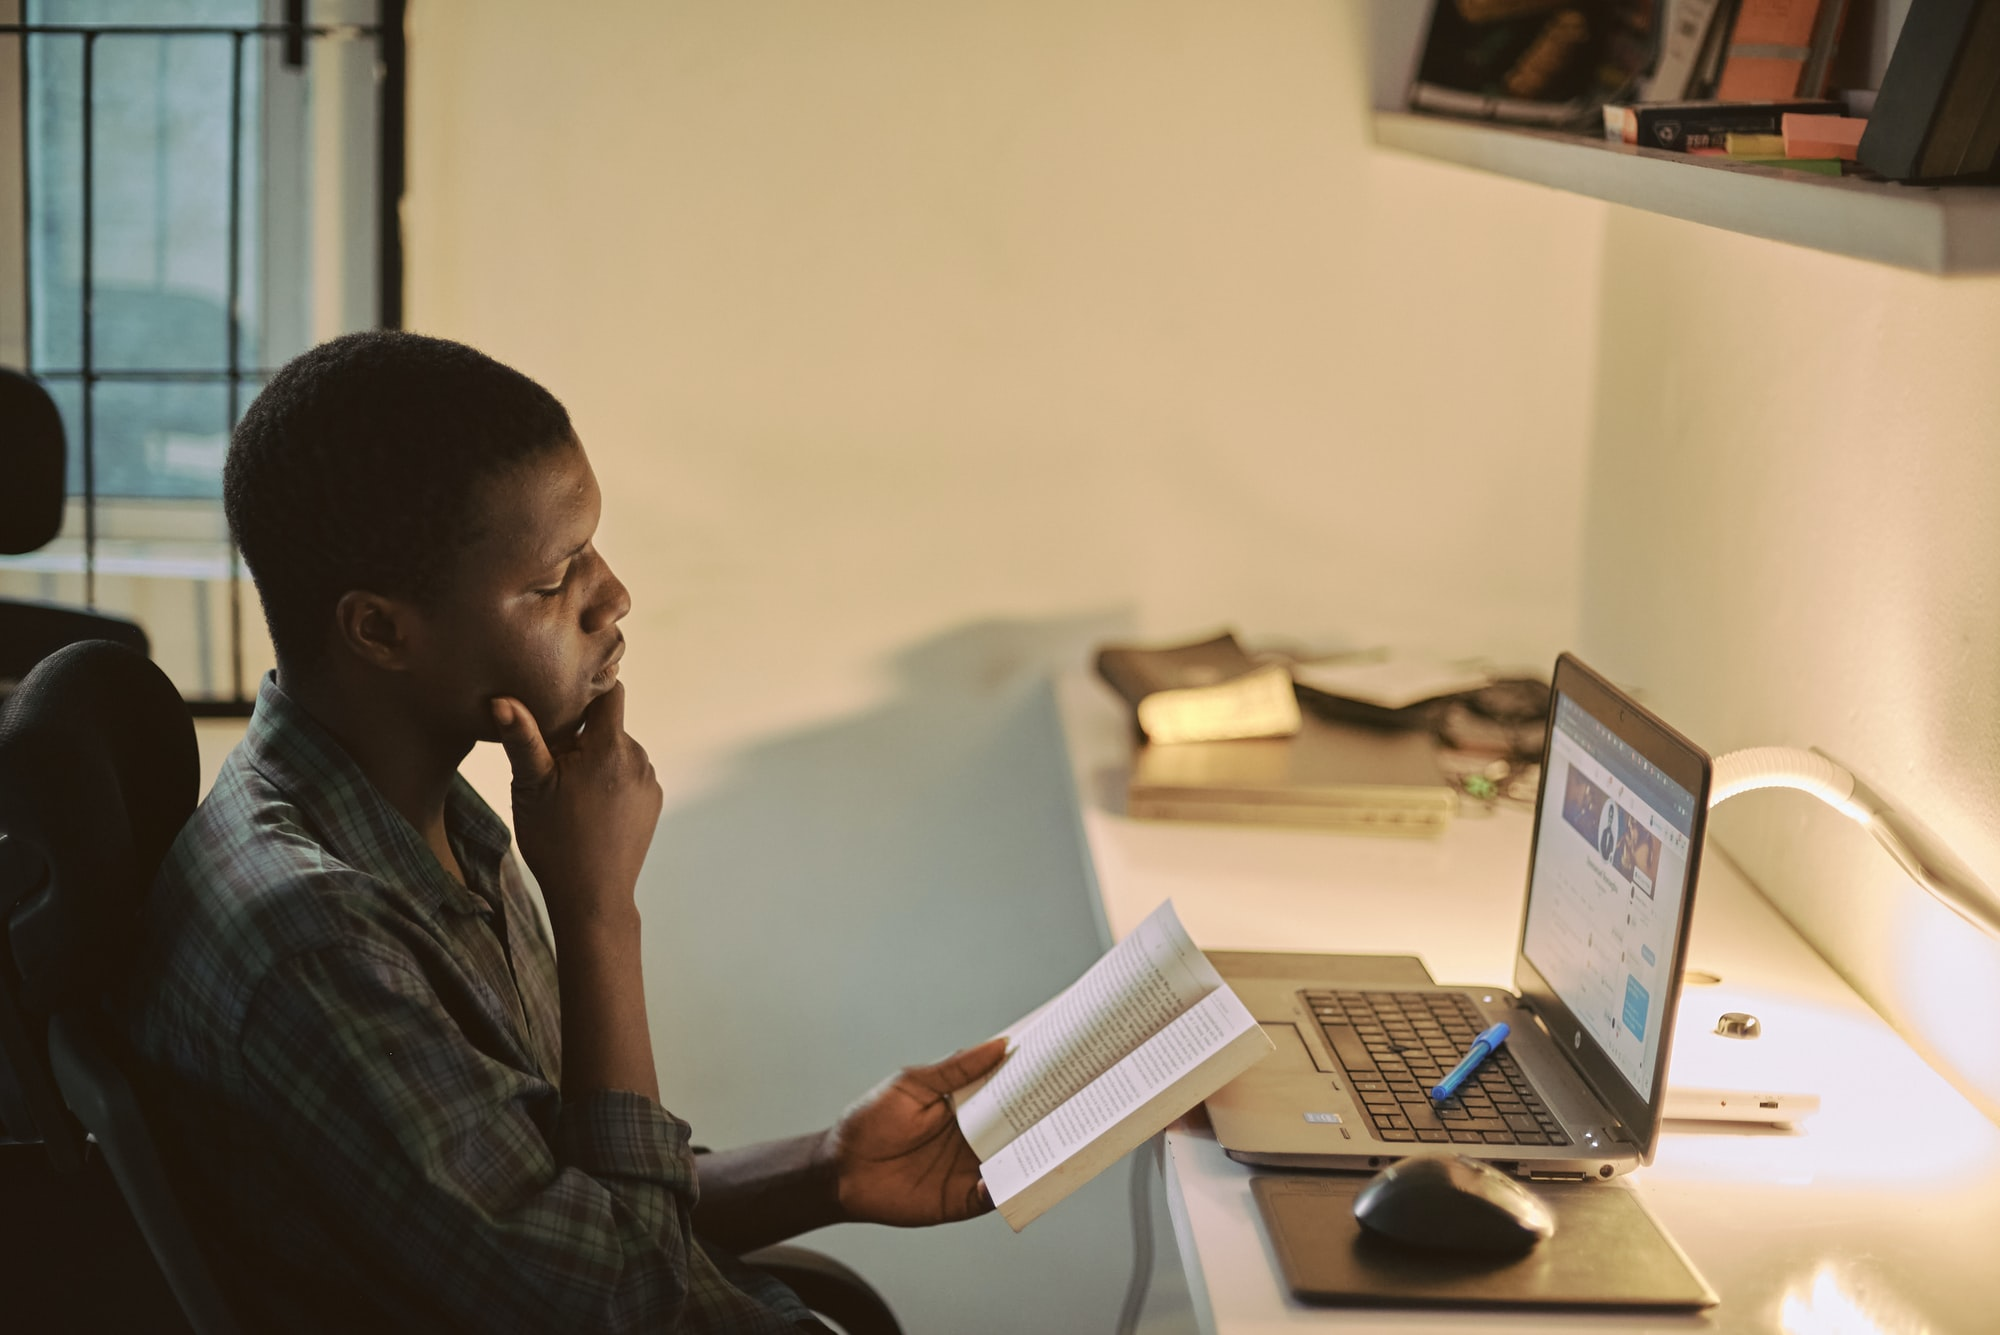 Portrait of a creative African man taking a break from work to read with his workspace blurred in the background